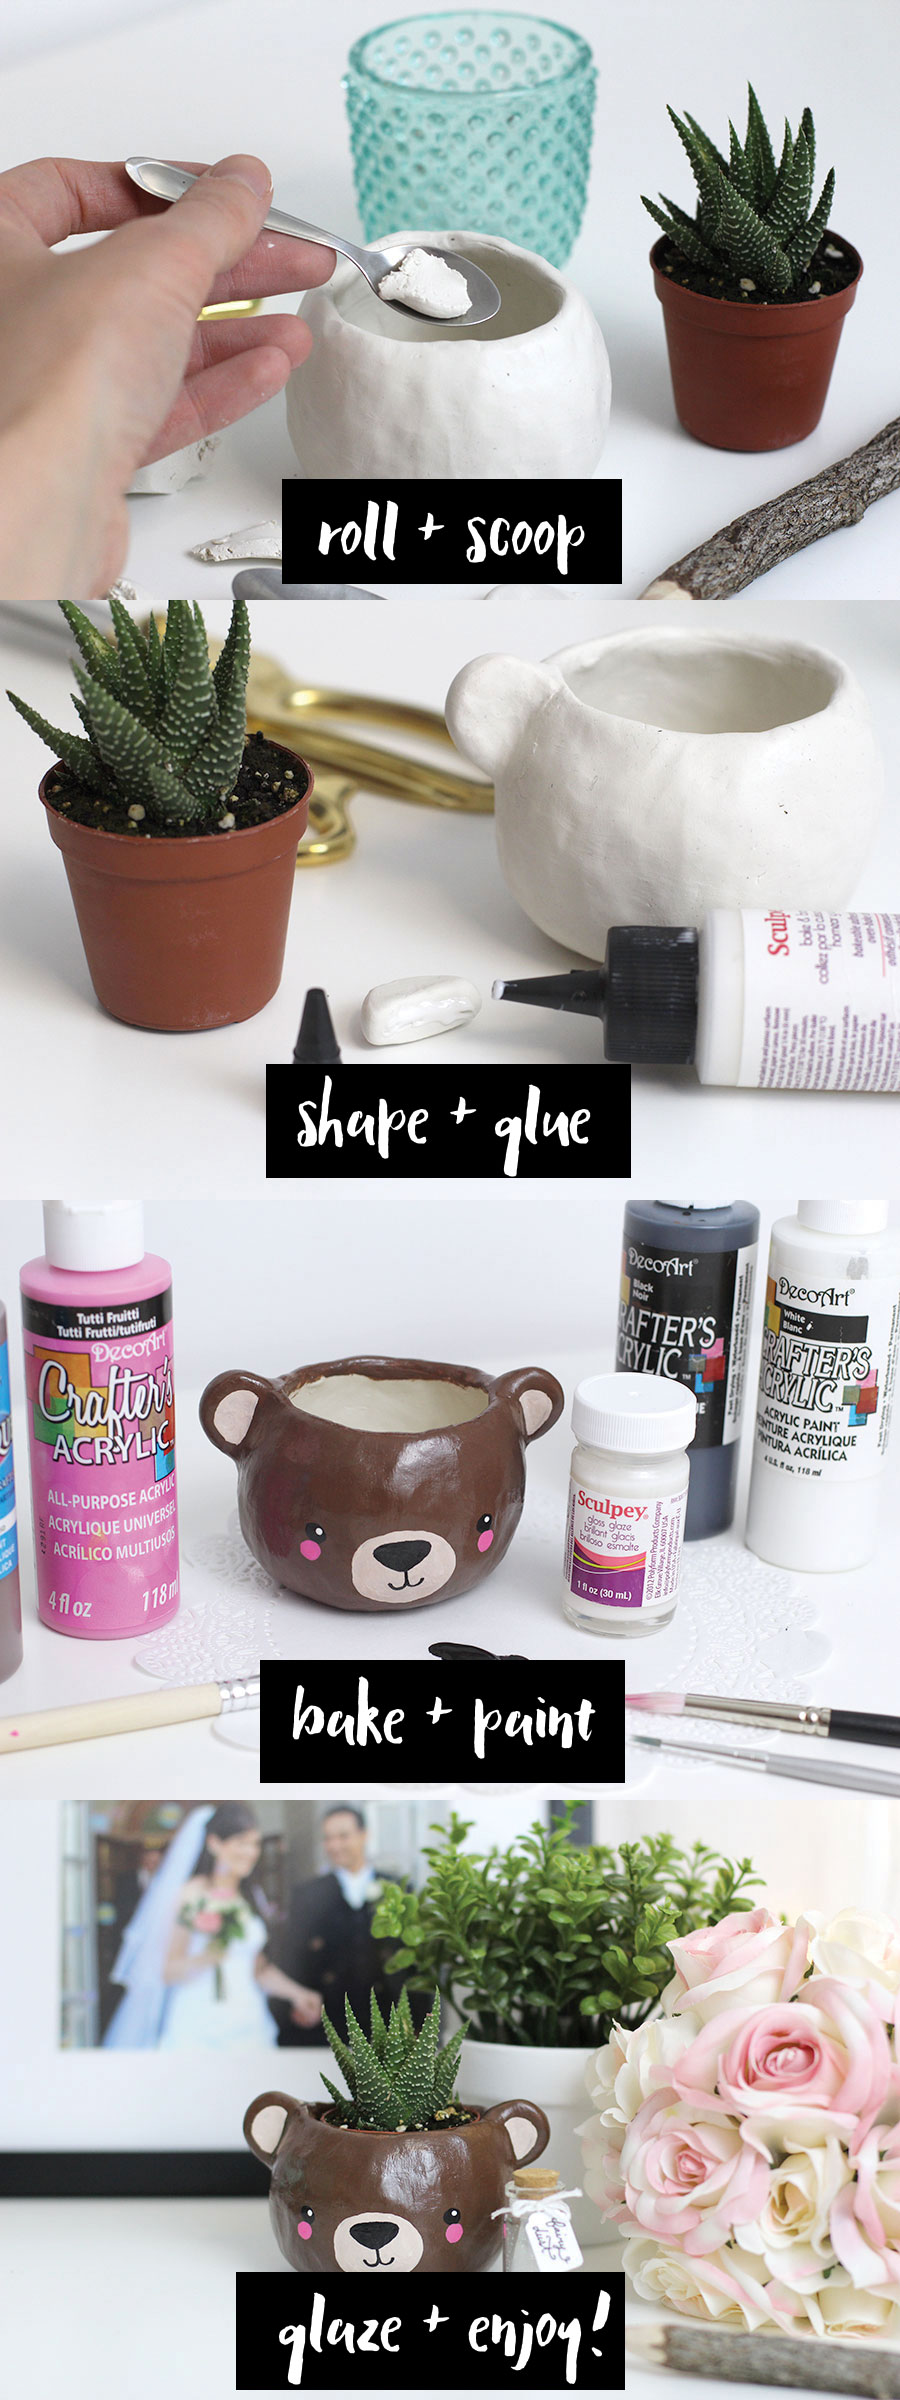 Instructions on how to make a small DIY succulent bear head planter with fimo clay. This is a really fun and quick craft. You can give it as a gift to a friend, sister, mom, daughter and you can also use it to decorate your room or office! It's super cute. Click through for tutorial.